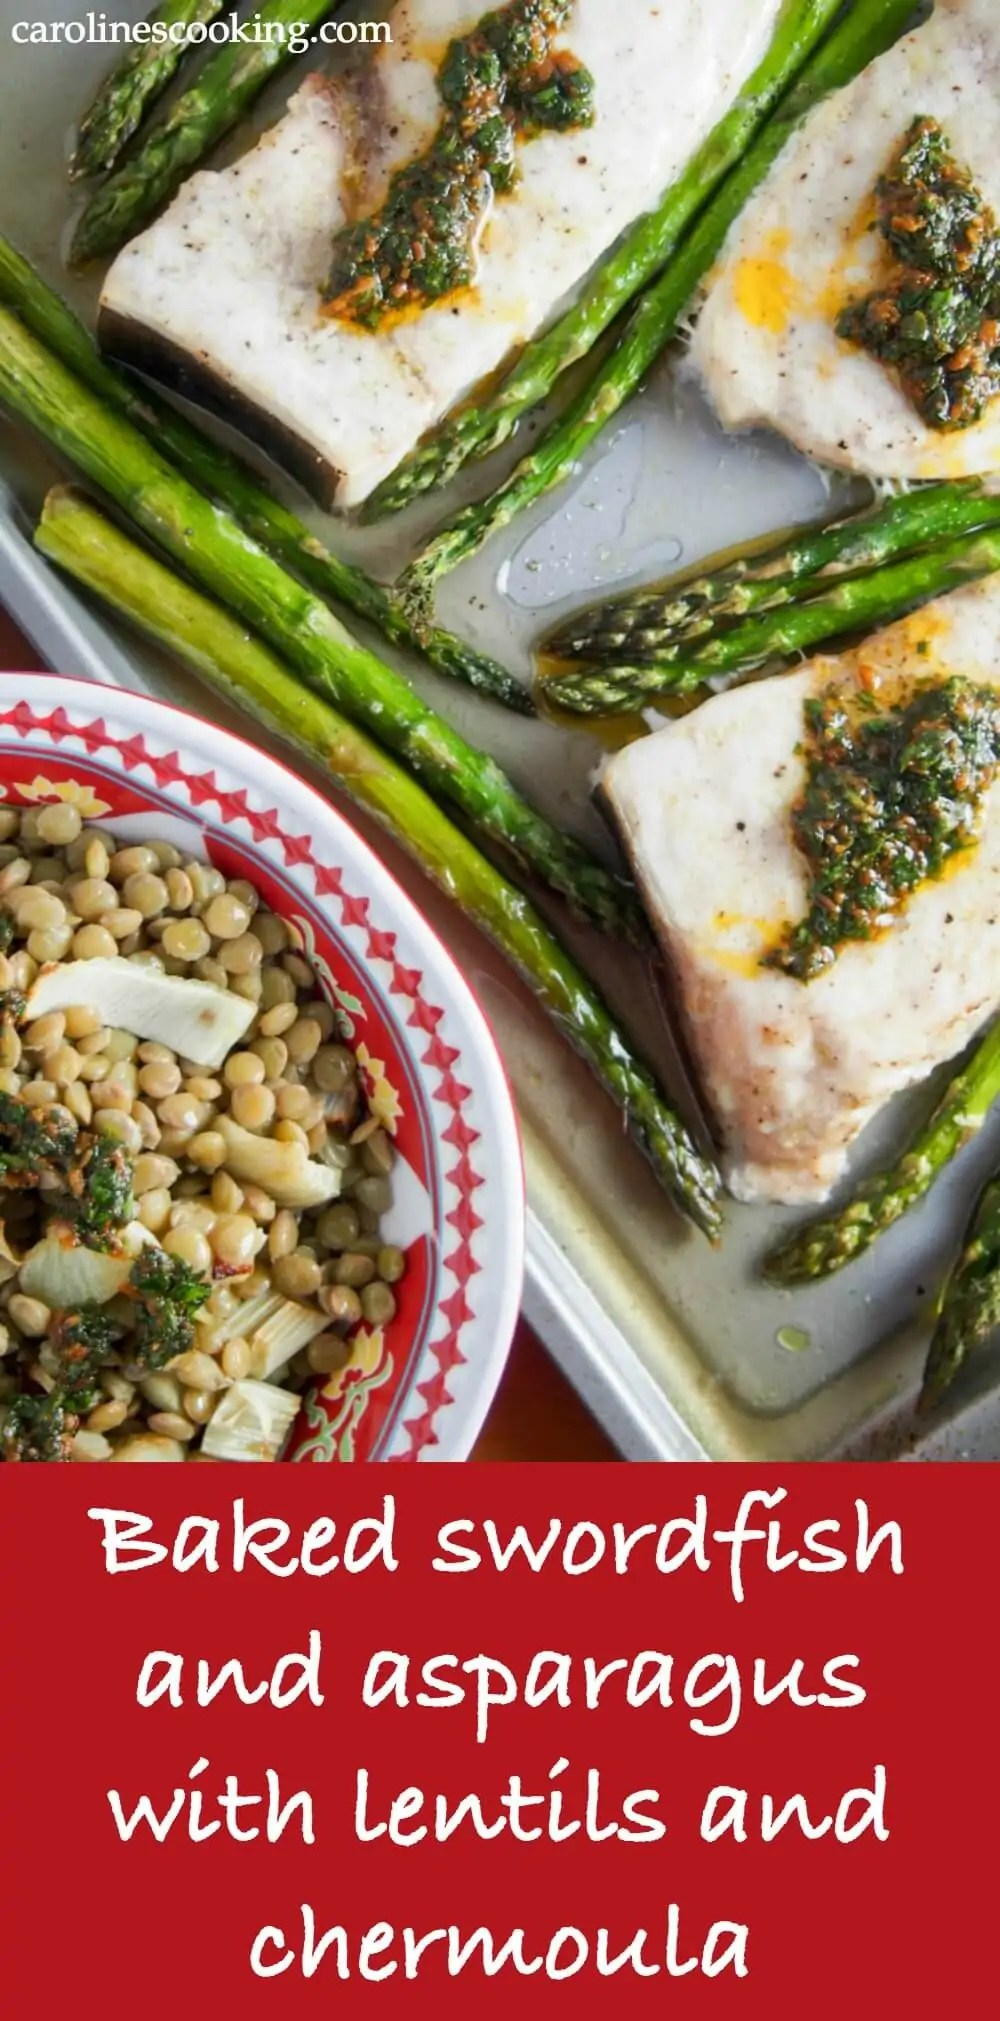 This baked swordfish and asparagus with lentils and chermoula is incredibly easy & quick to make, healthy, fresh and delicious. In other words, big win! A great weekday meal that's restaurant quality.